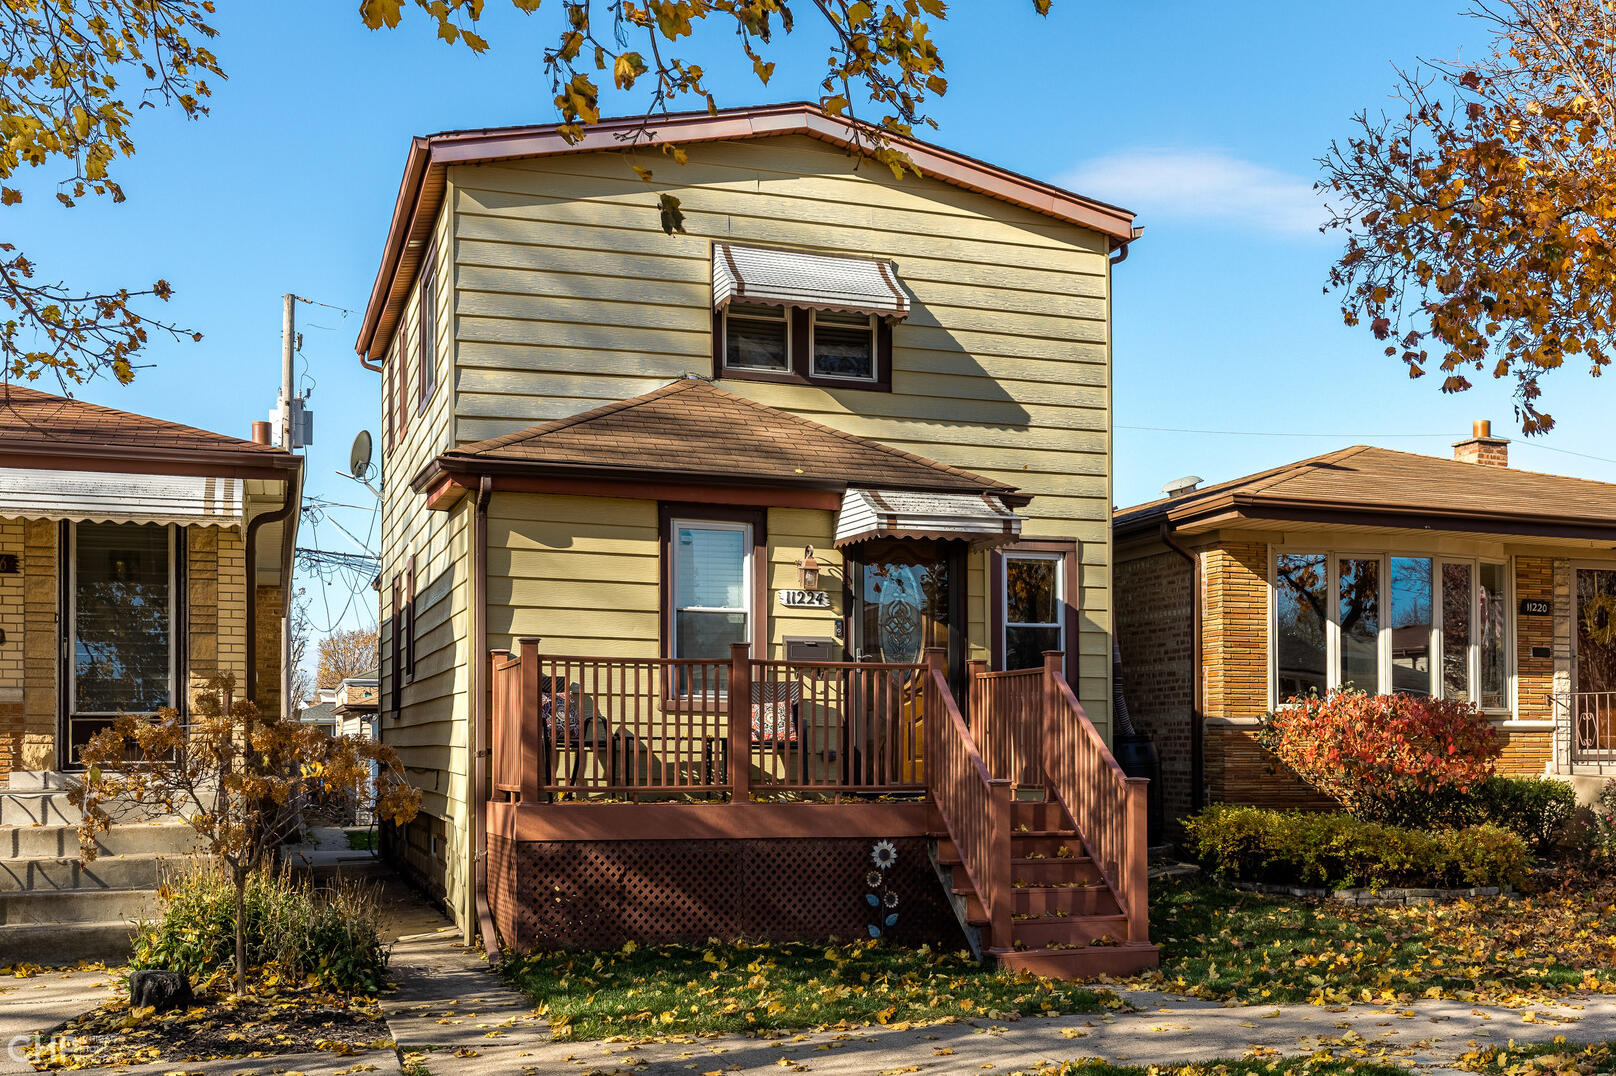 Photo of 11224 Whipple Chicago IL 60655